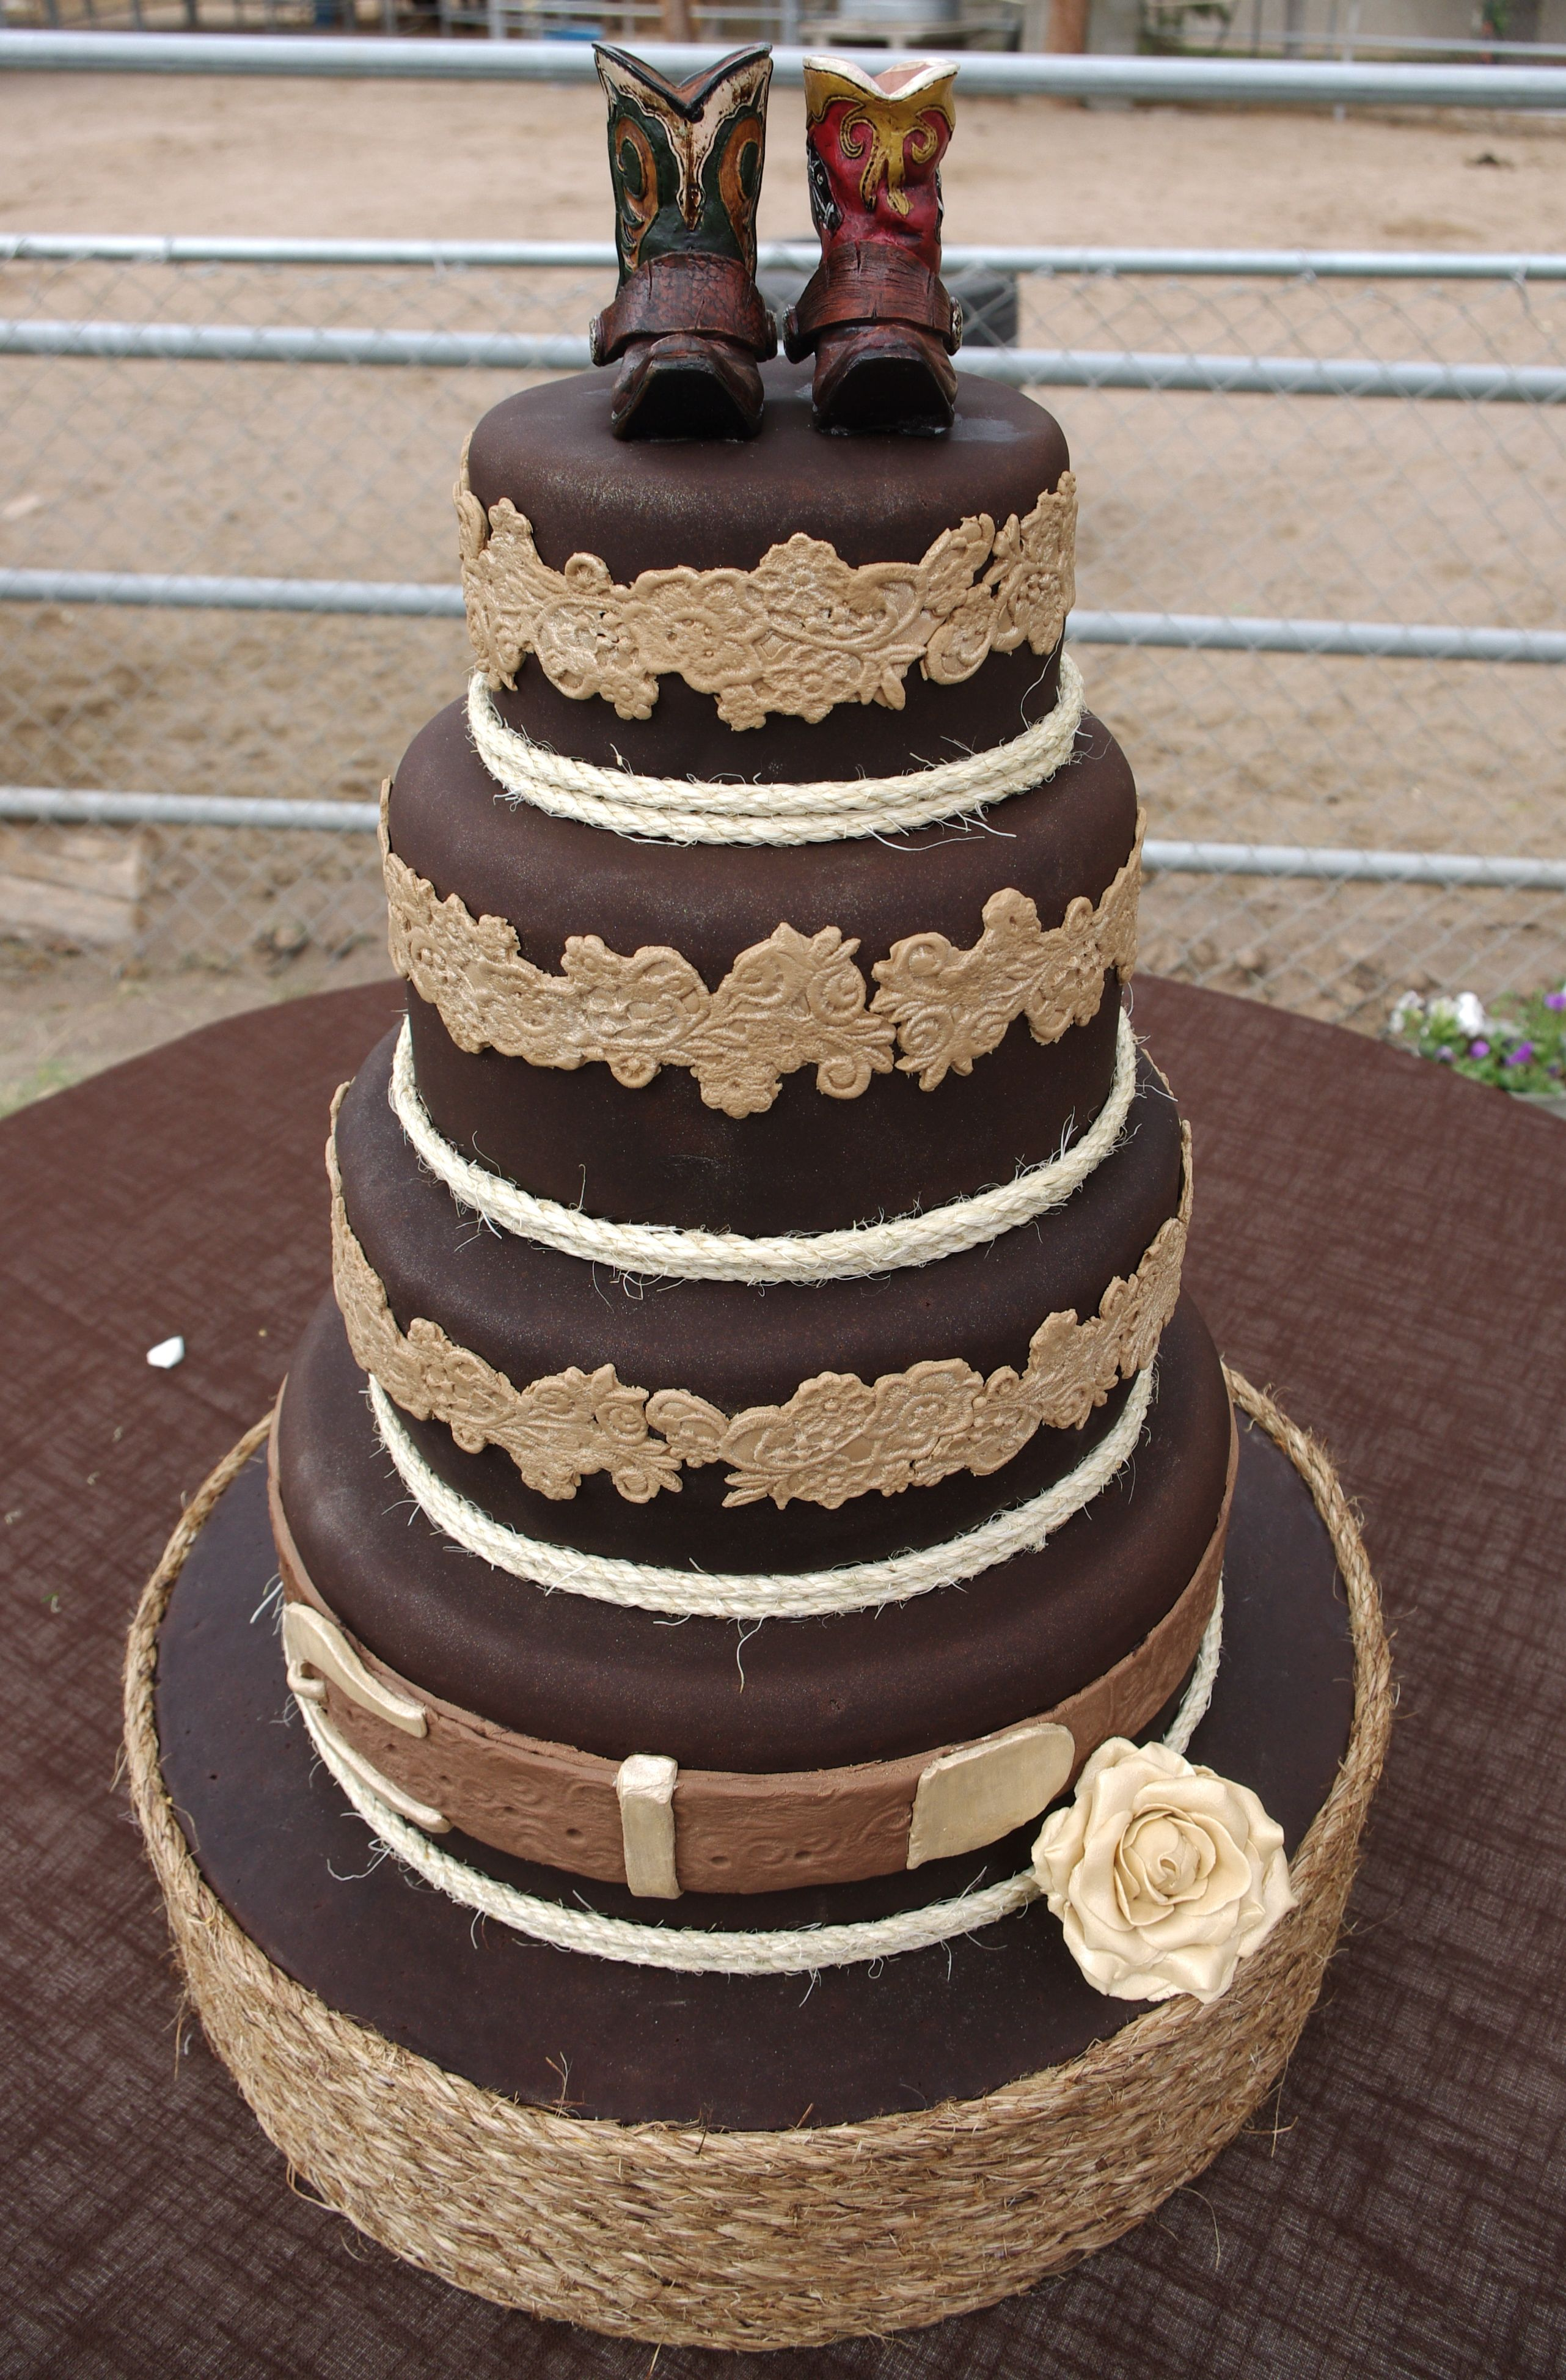 Western Wedding Cake Adorable Looks like my birthday cake would love it for my future